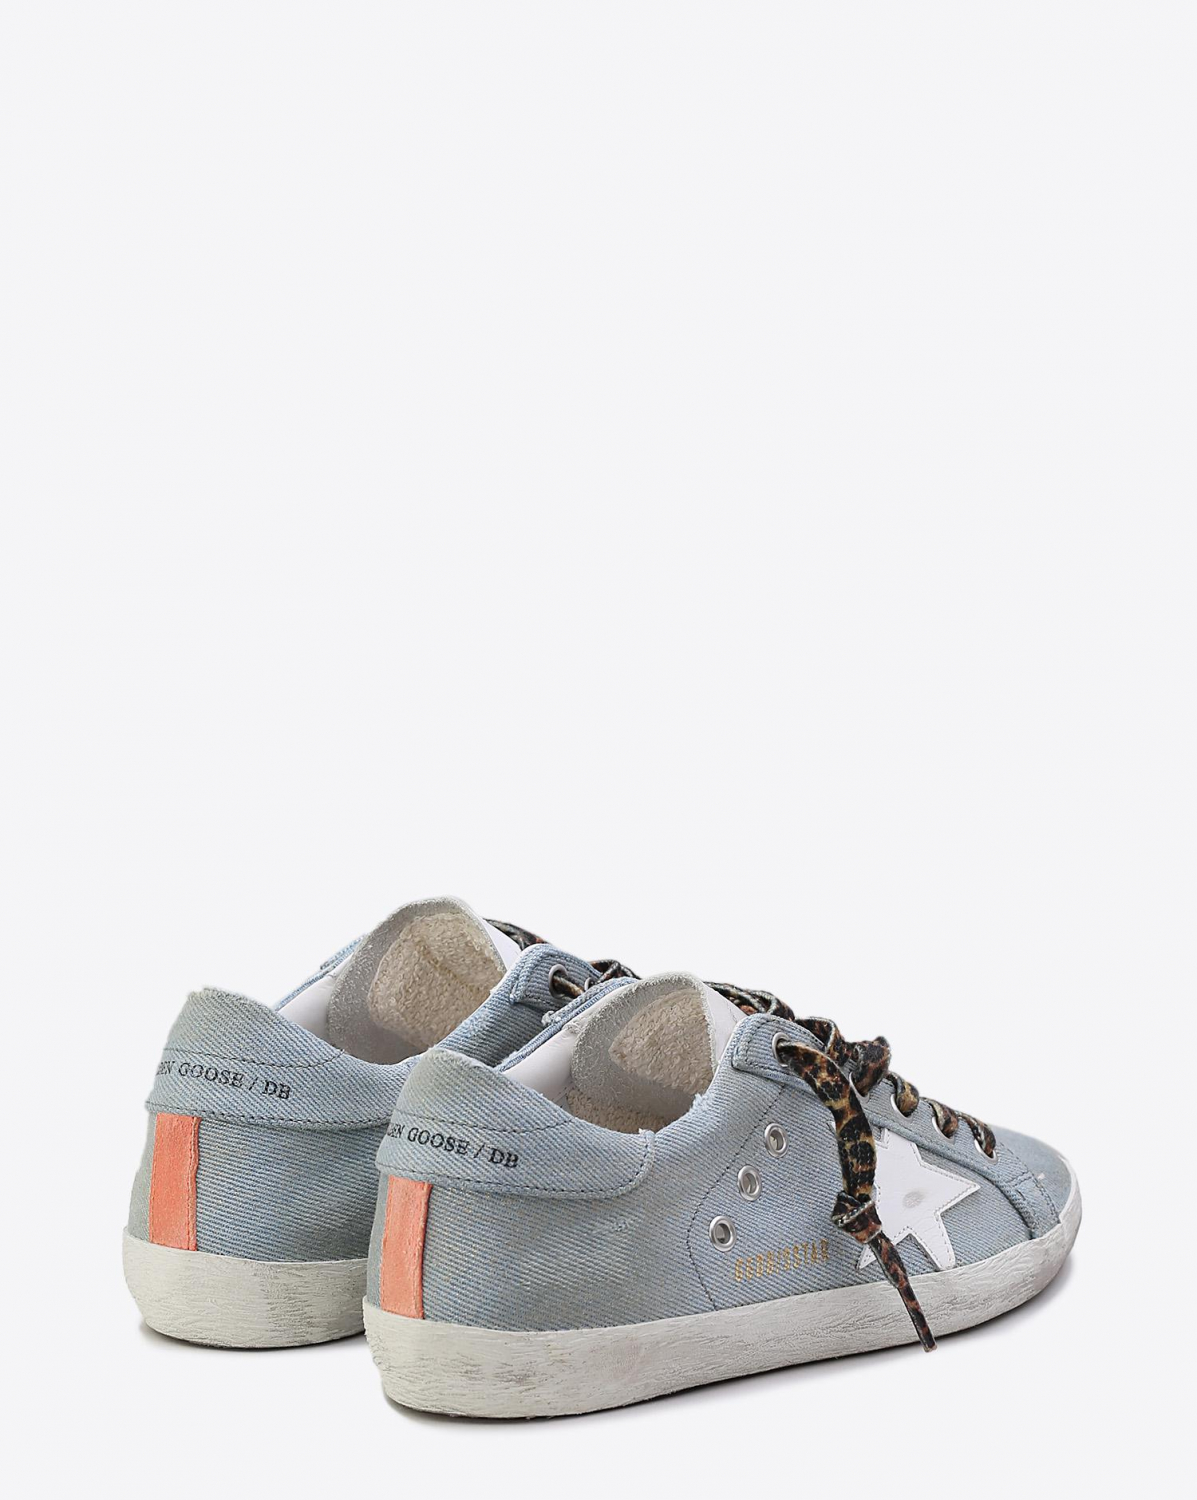 Golden Goose Woman Collection Sneakers Superstar Shiny Jeans  White star